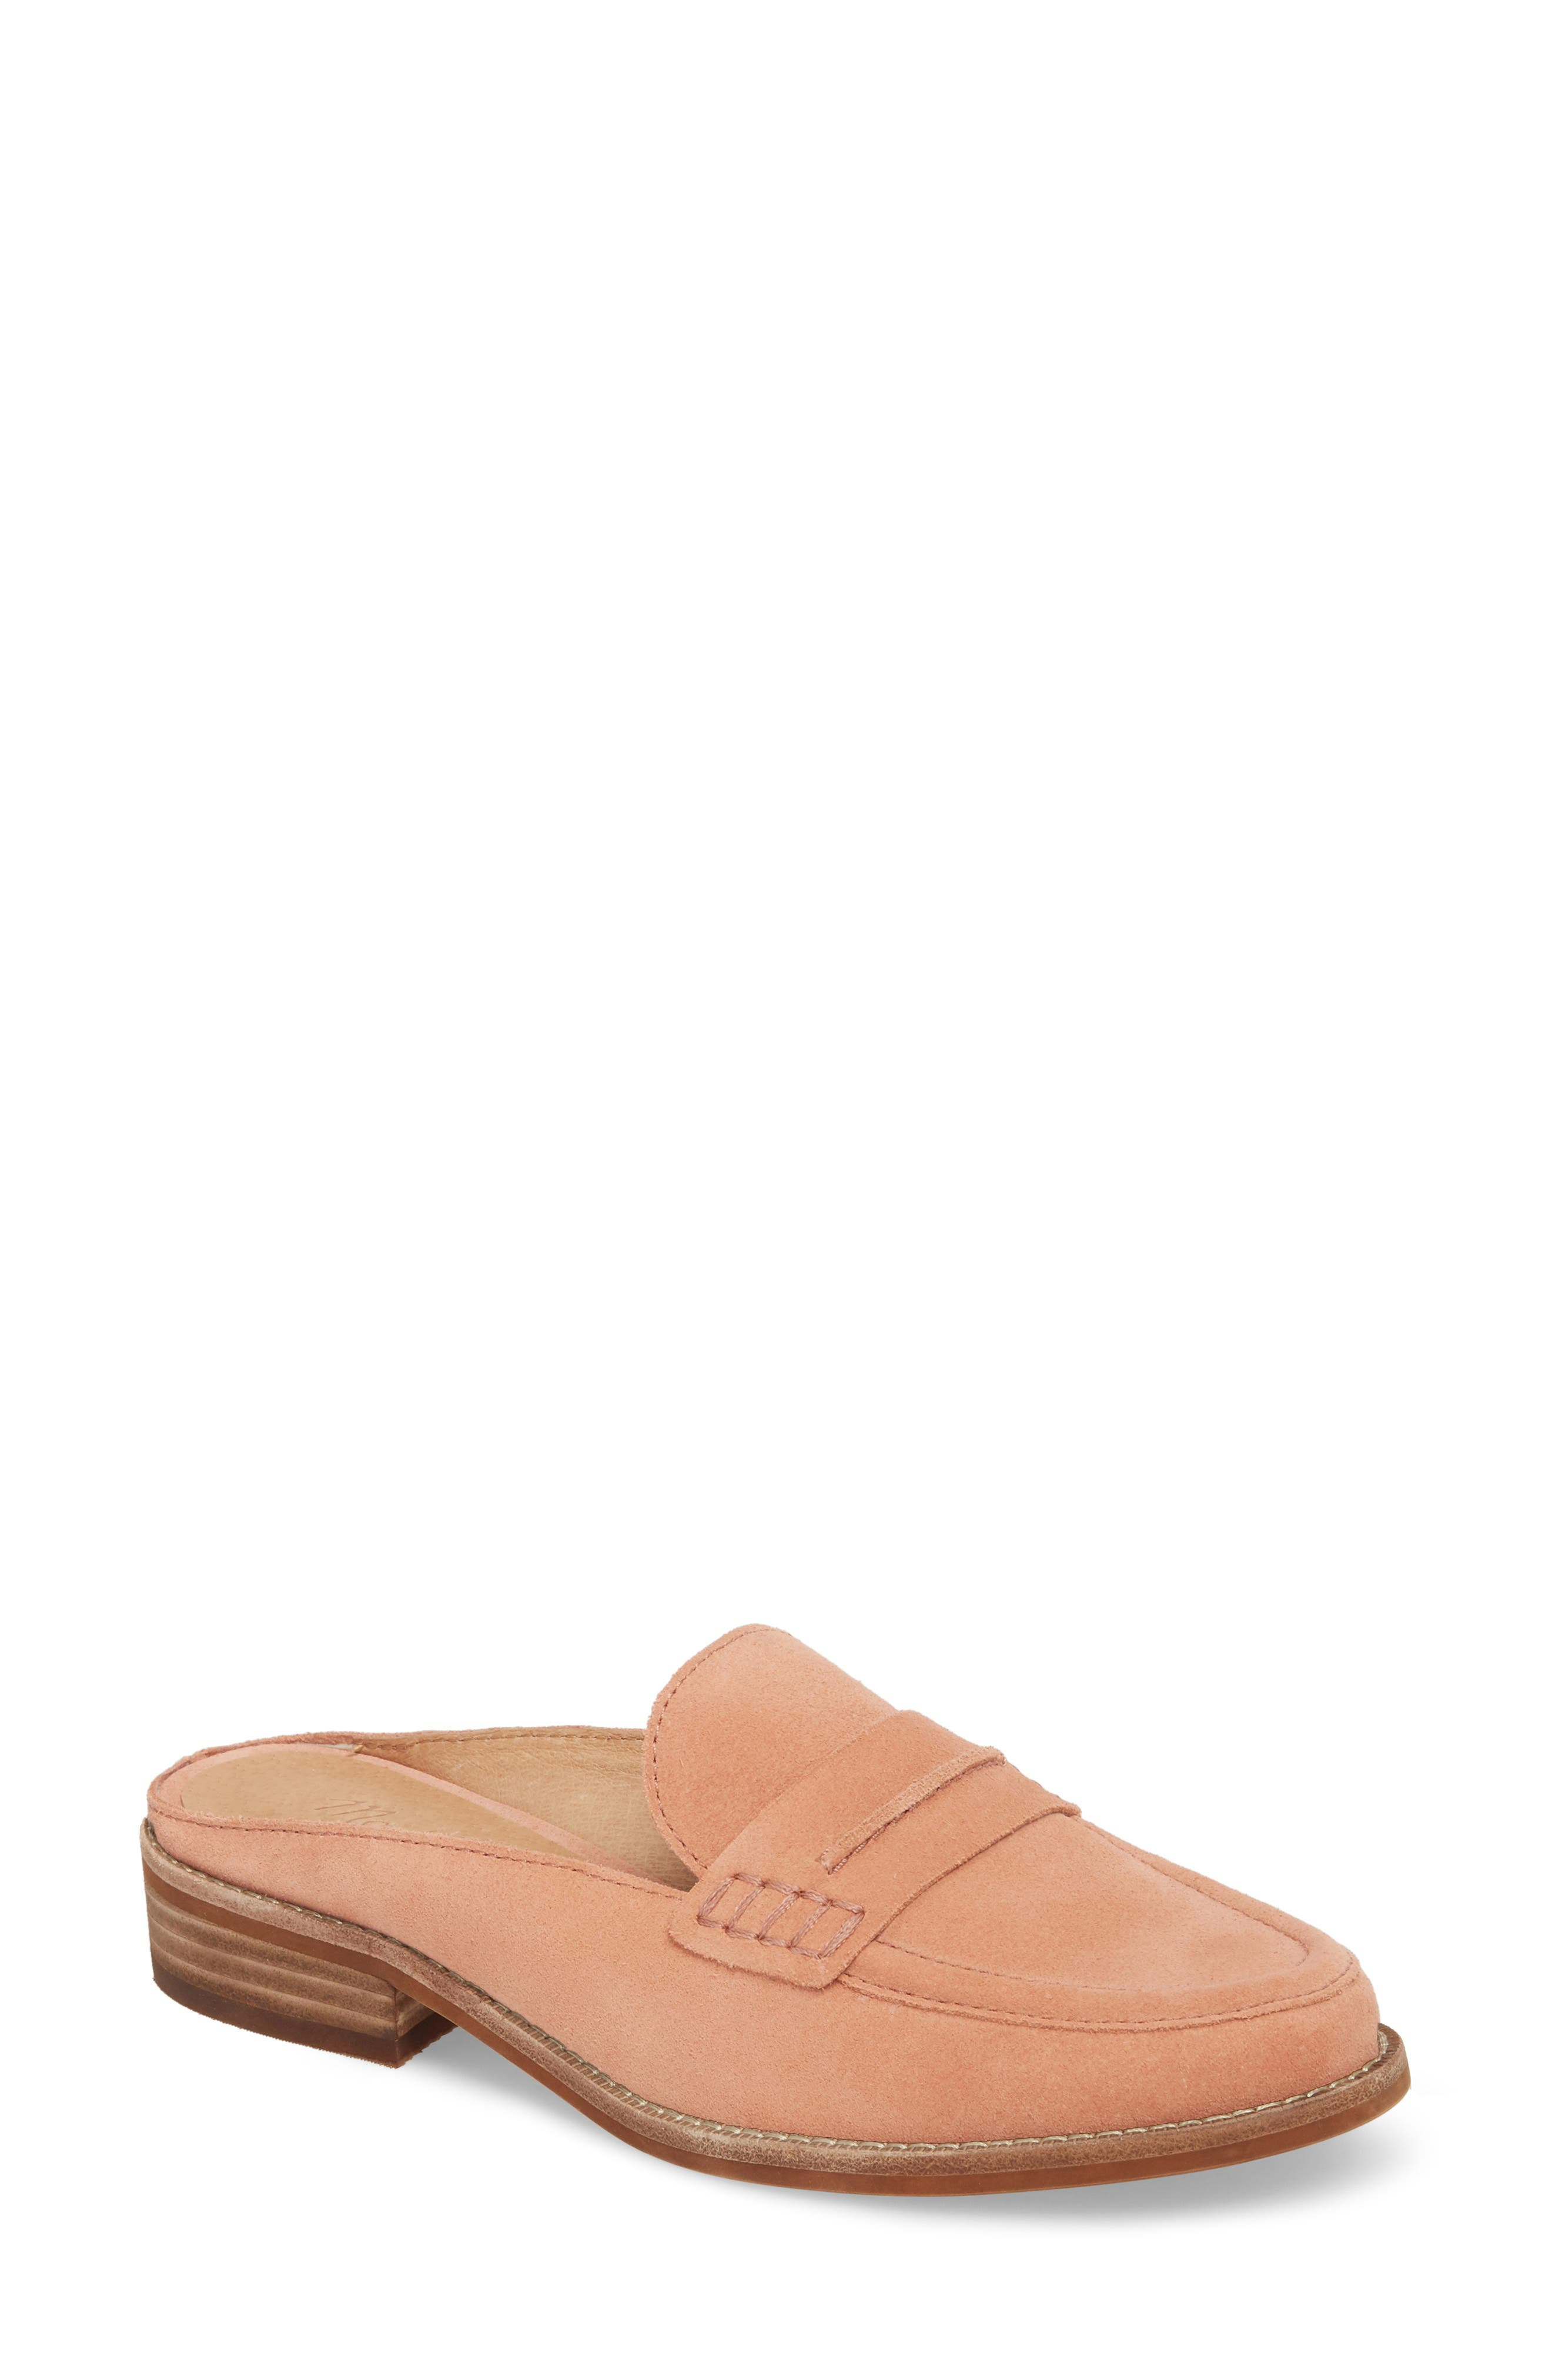 The Elinor Loafer Mule,                             Main thumbnail 1, color,                             651